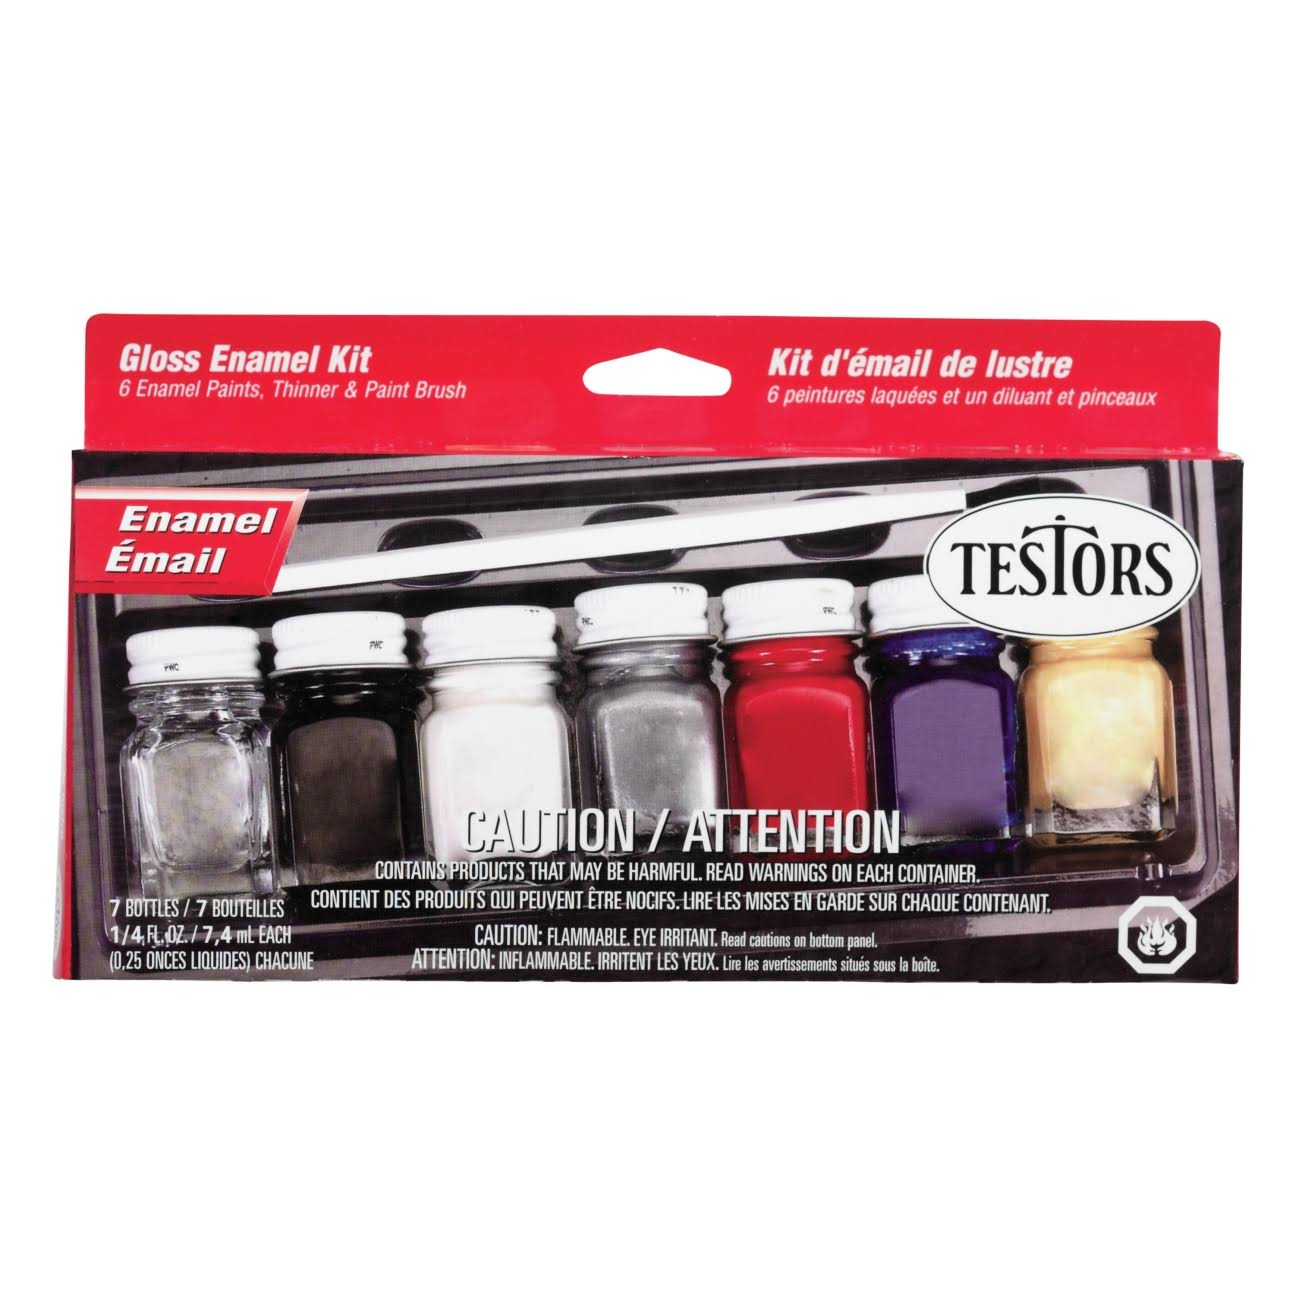 Testors Gloss Enamel Hobby Paint Kit